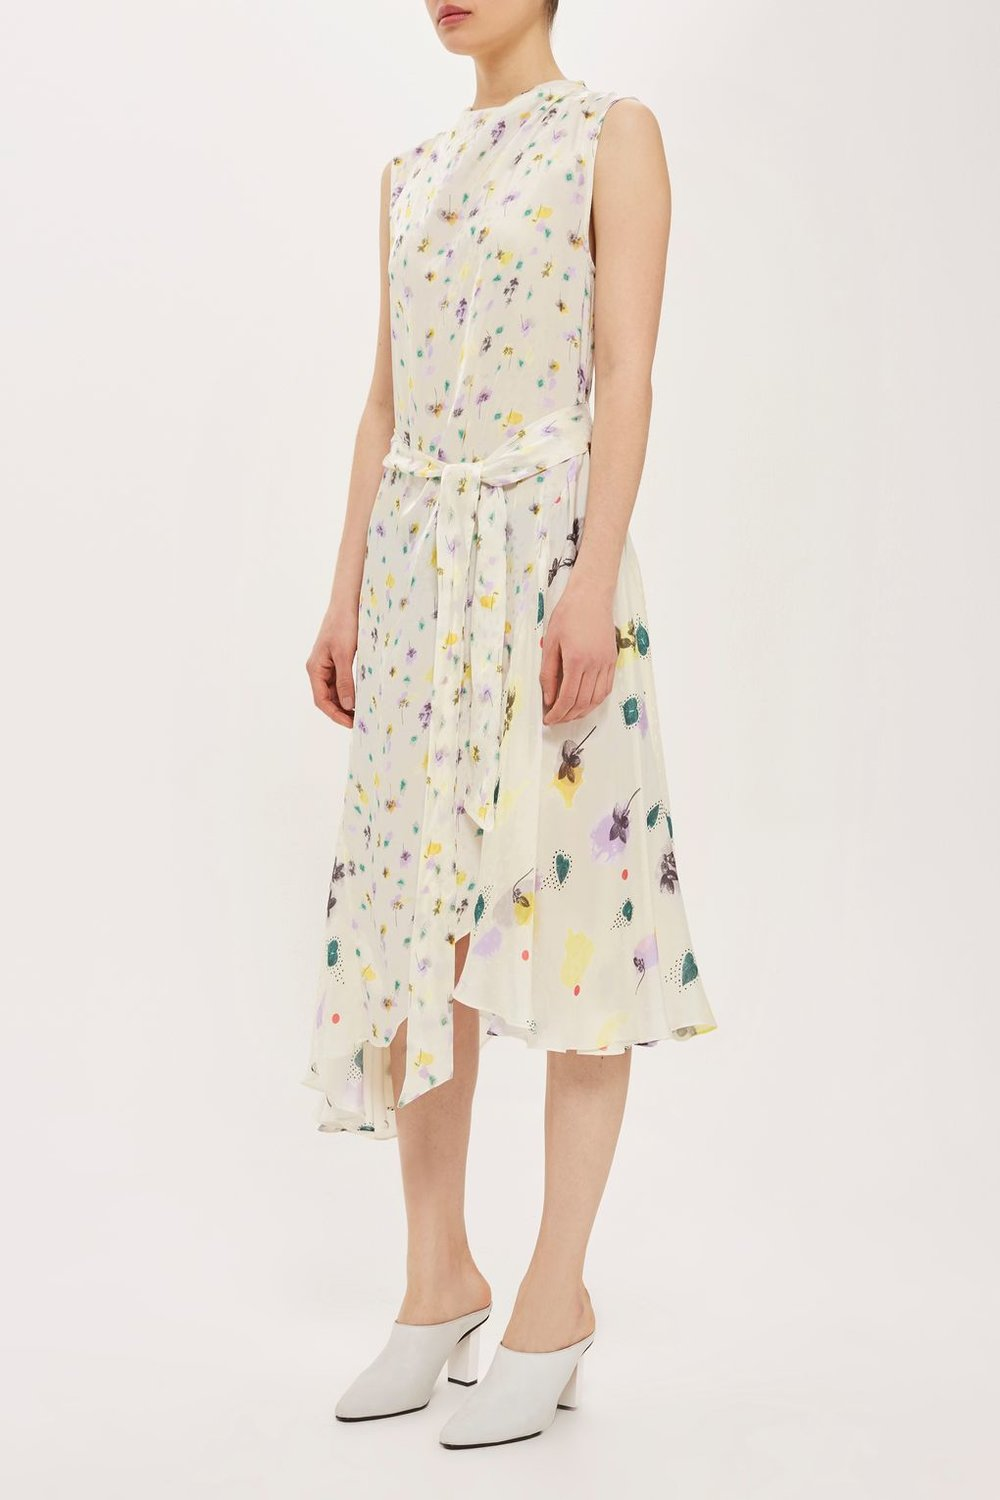 Ditsy Ink Dress by Boutique - Topshop  £95